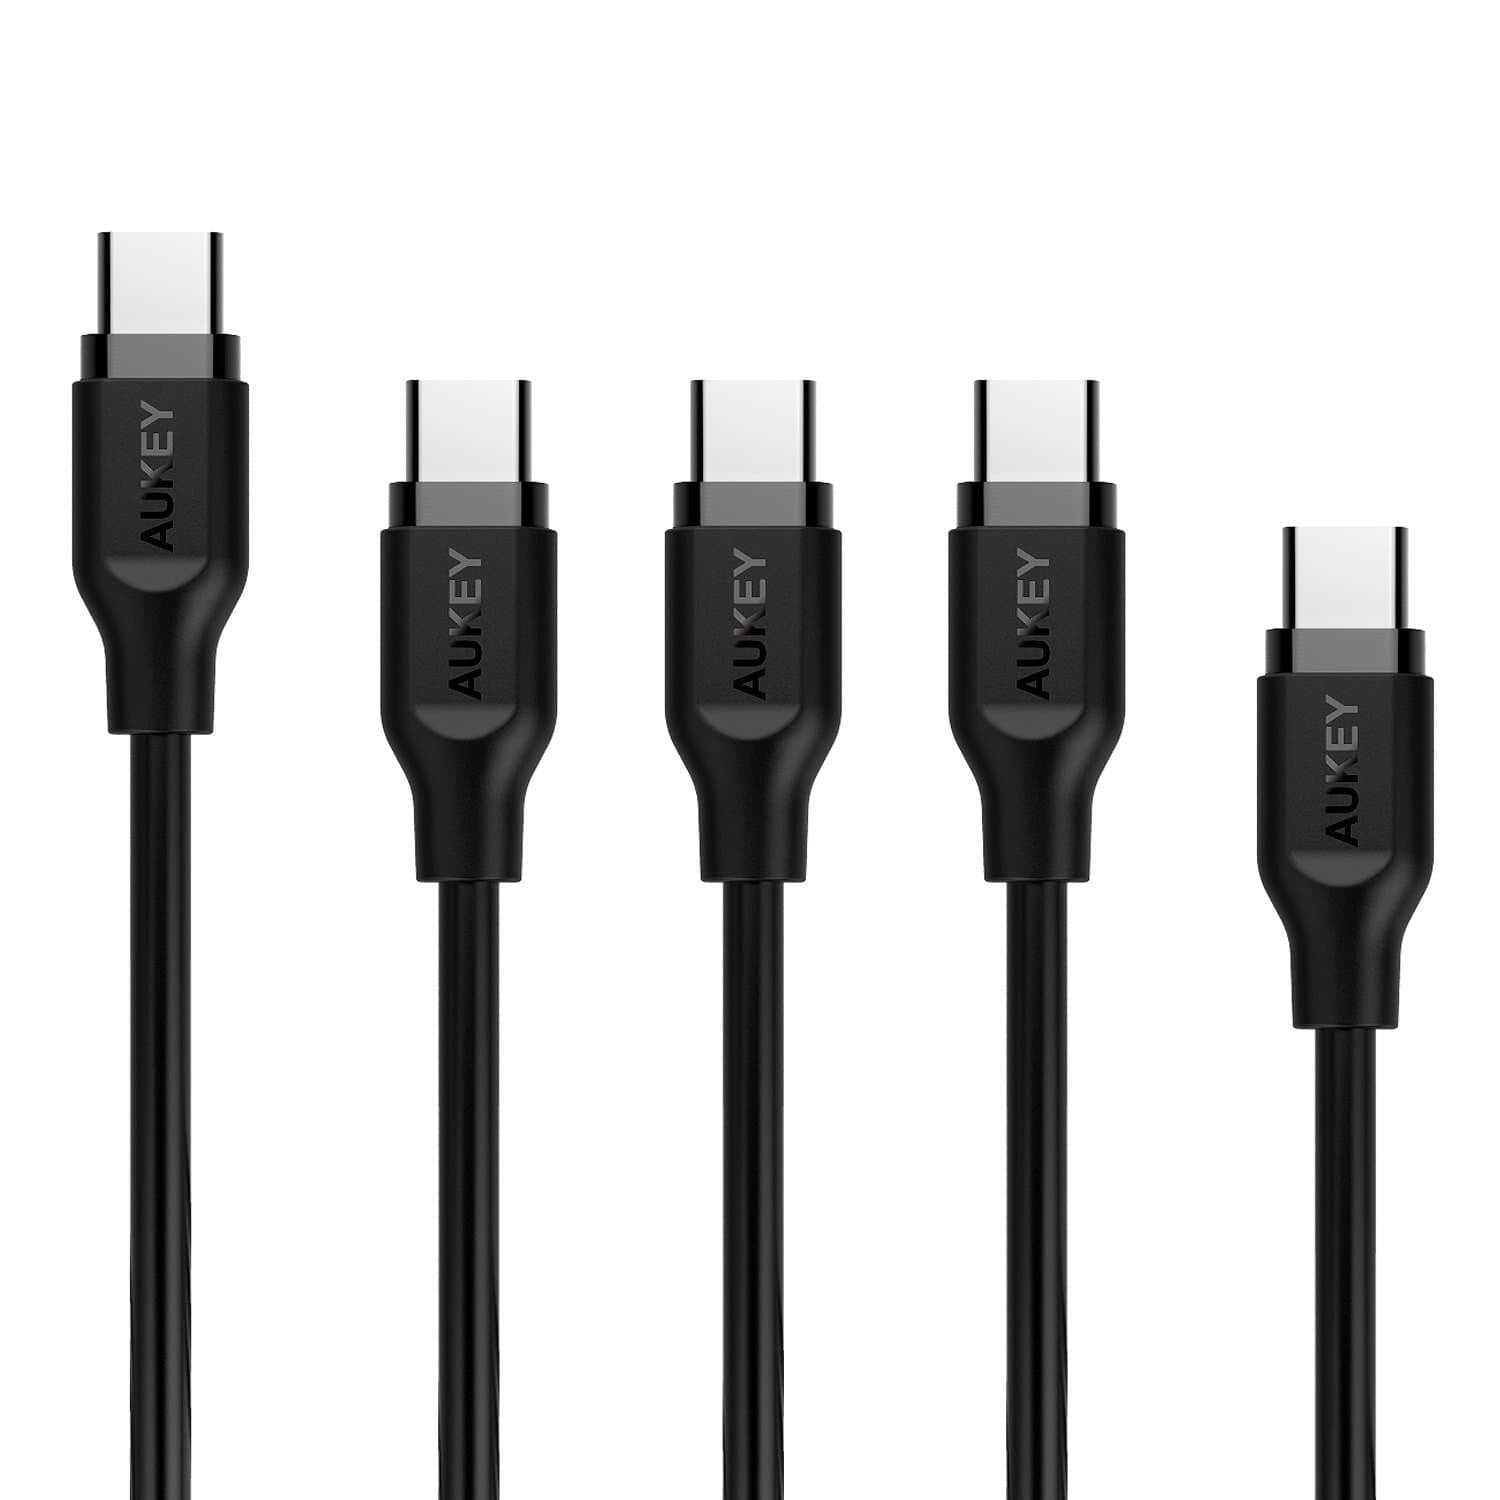 AUKEY CB-CMD5 - USB C Cable to USB 3.0 A 1m X 3 2m X 1 30cm X 1 (5 Pack) - Aukey Malaysia Official Store